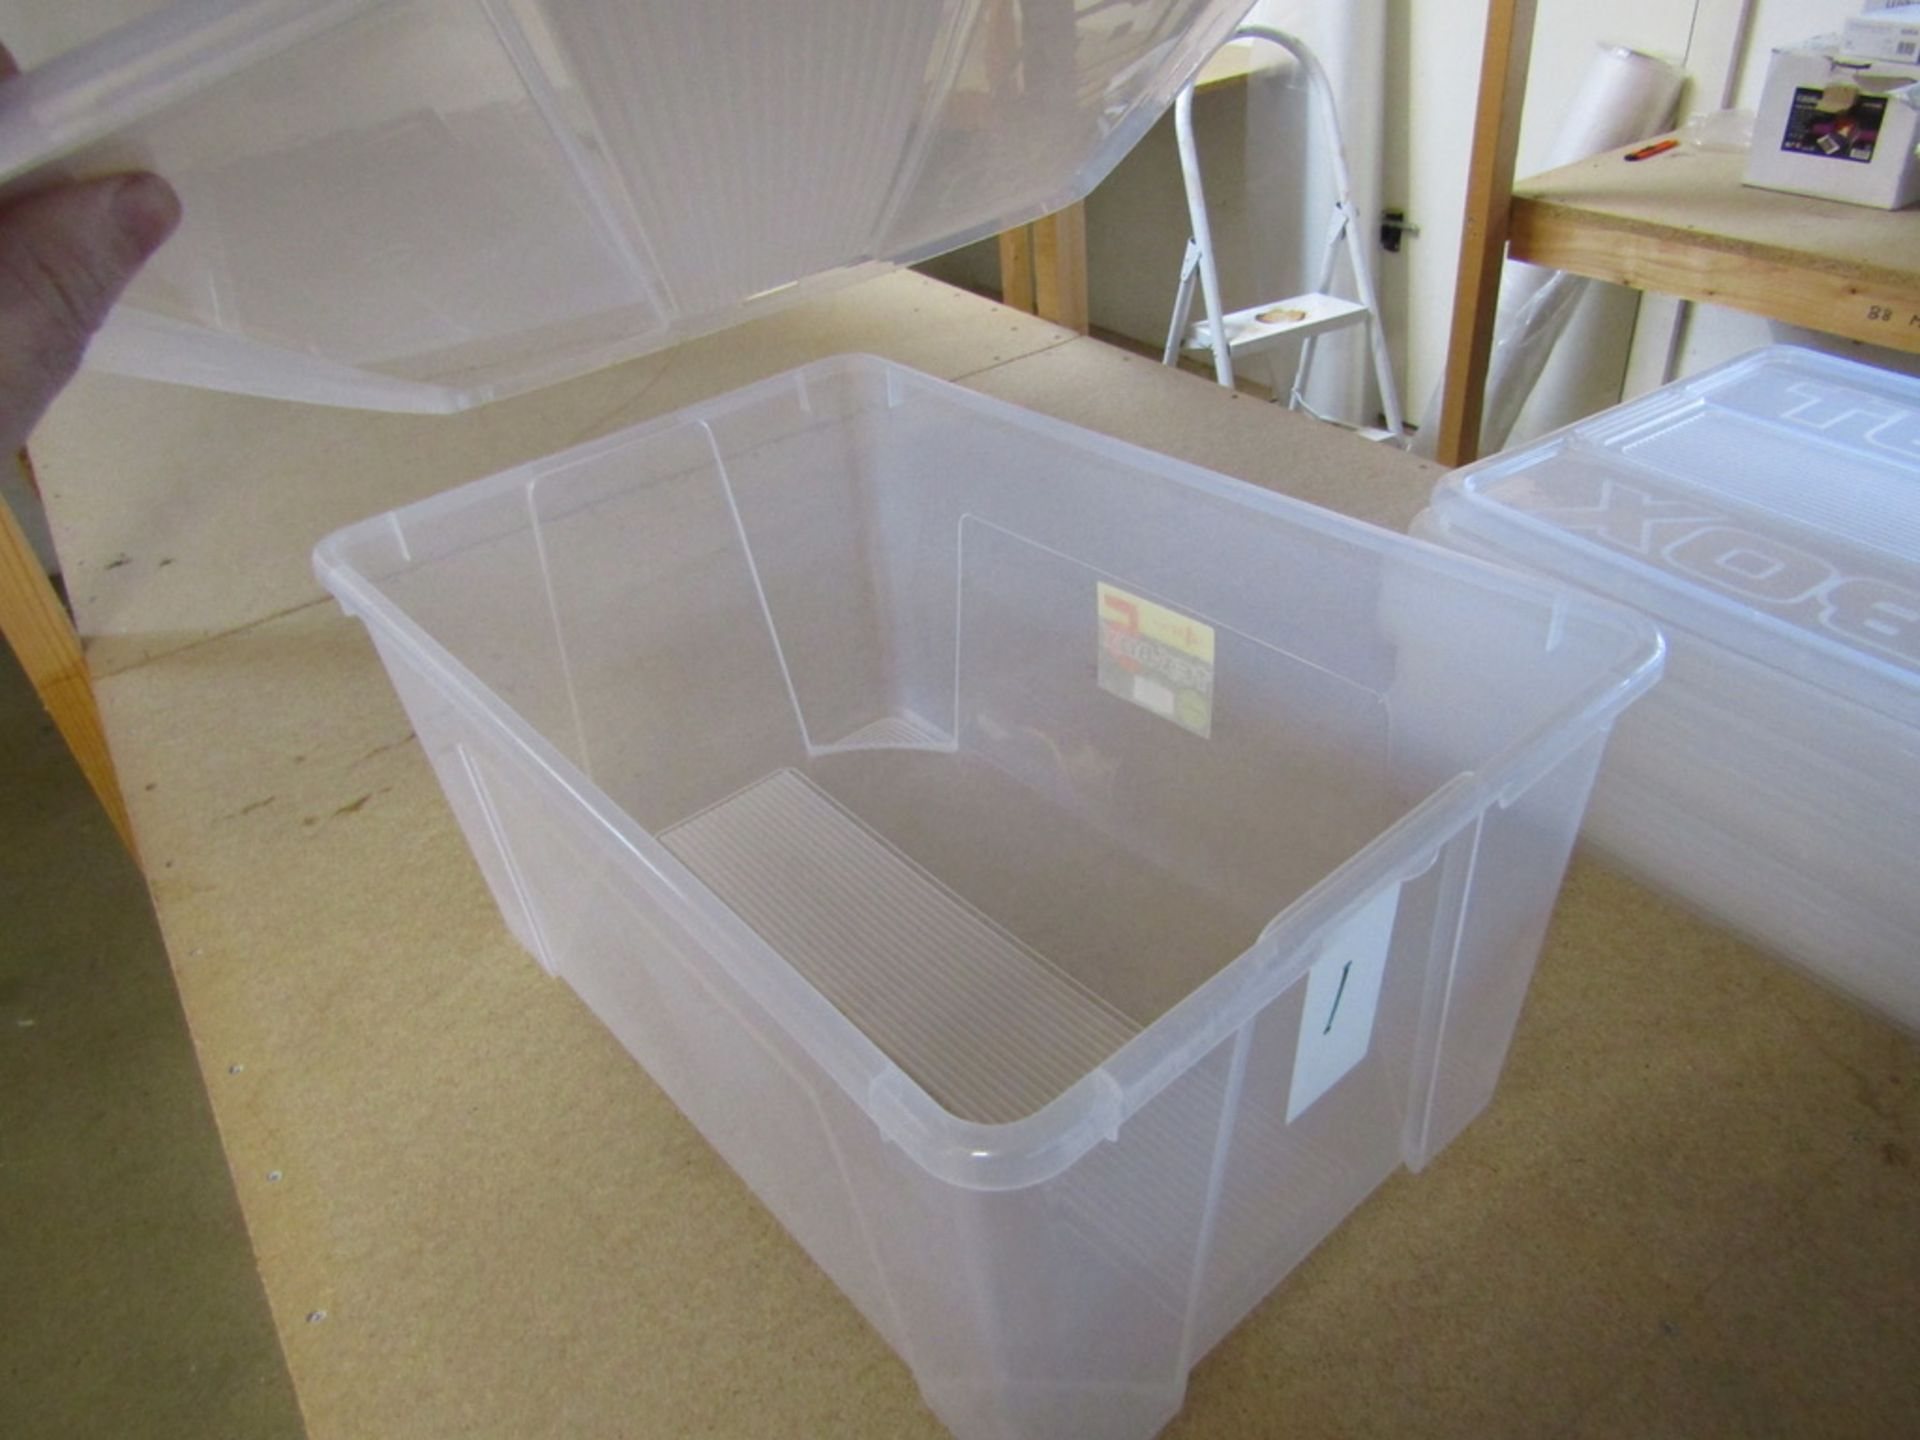 2 Bays of Racking with Storage Boxes. USED - Image 7 of 7